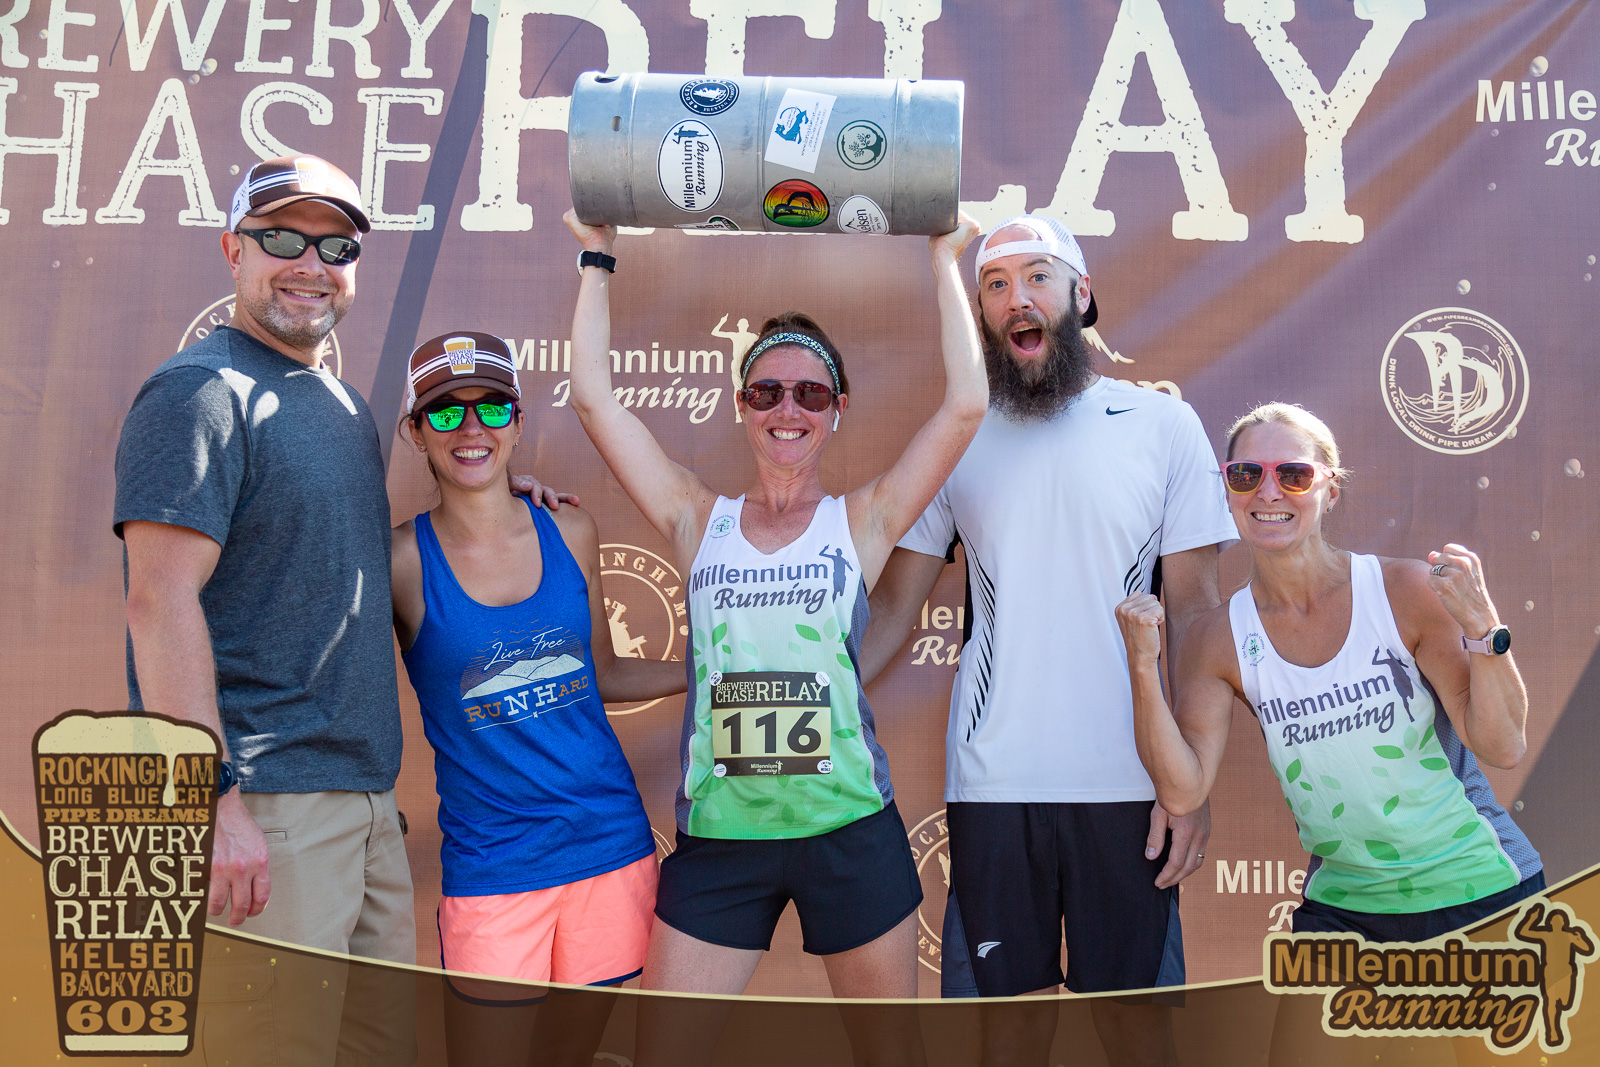 PHOTOS: Brewery Chase Relay – July 24, 2021